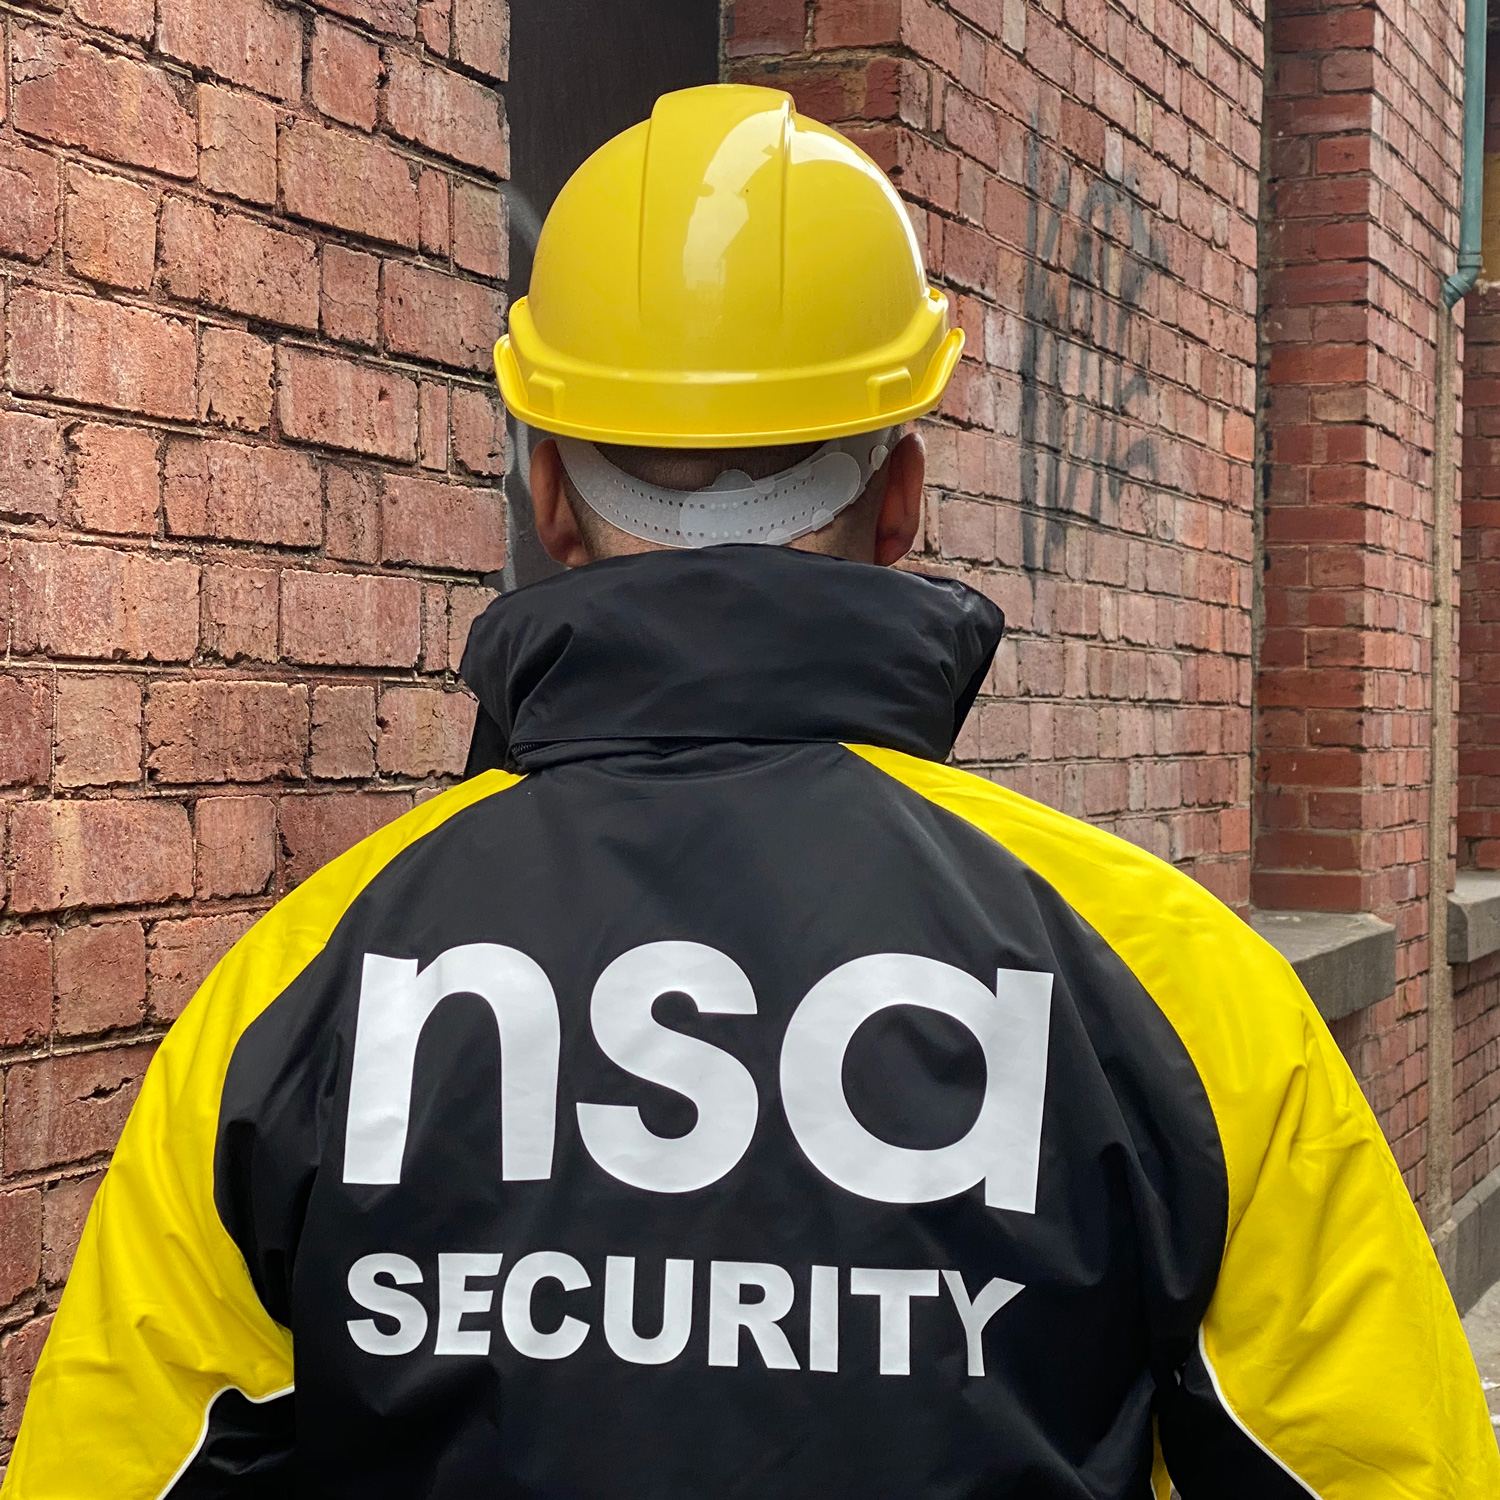 security-guard-nsa-